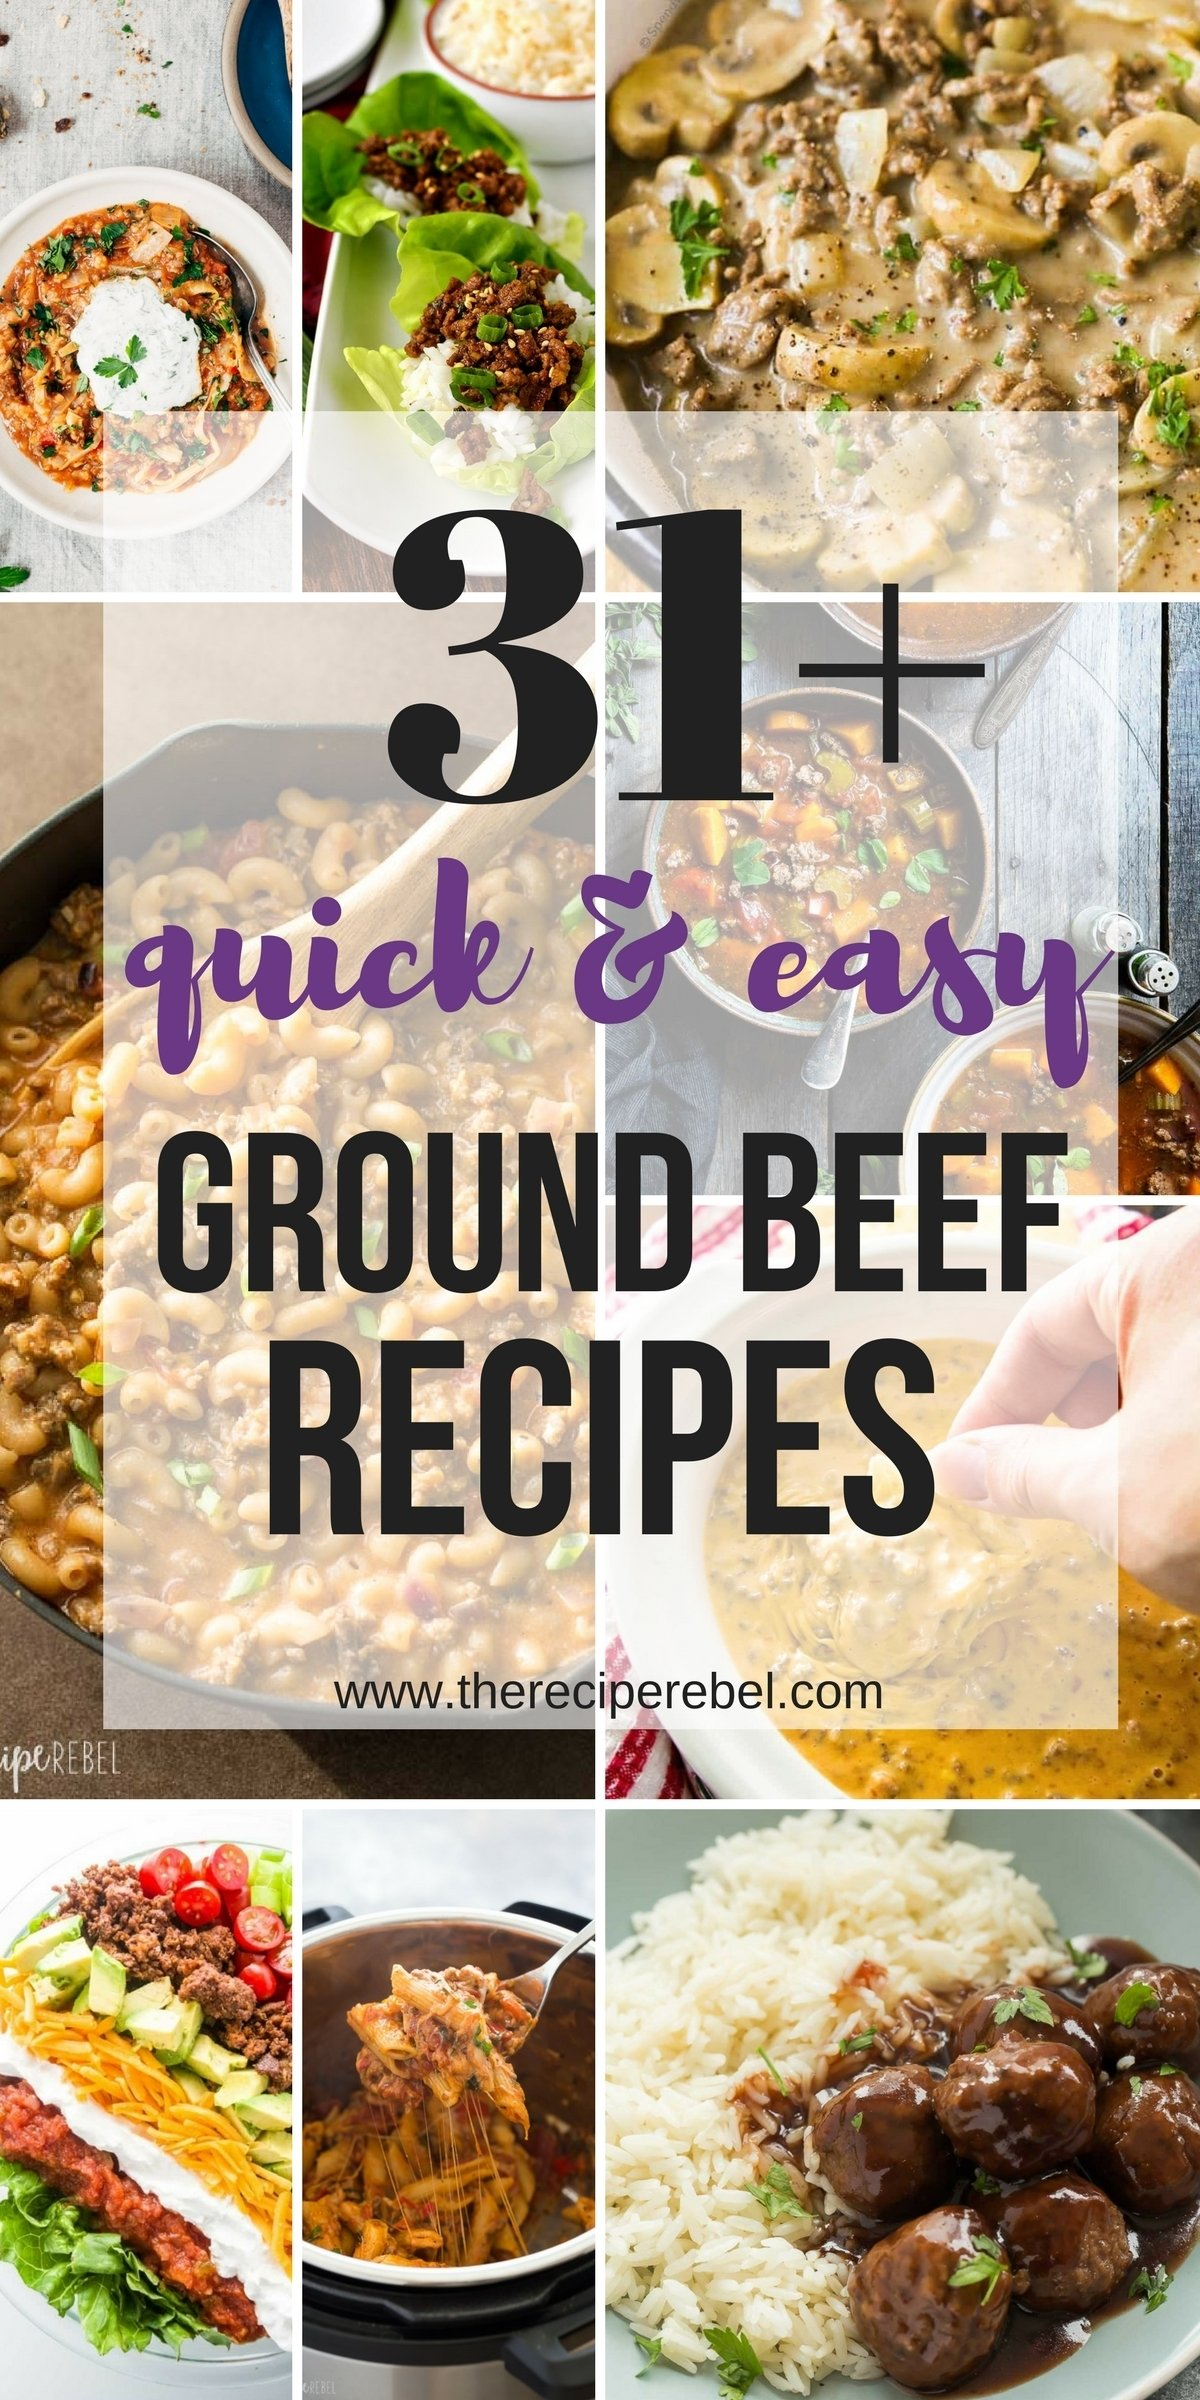 10 Stylish Quick Dinner Ideas With Ground Beef 31 quick ground beef recipes easy family friendly dinner ideas